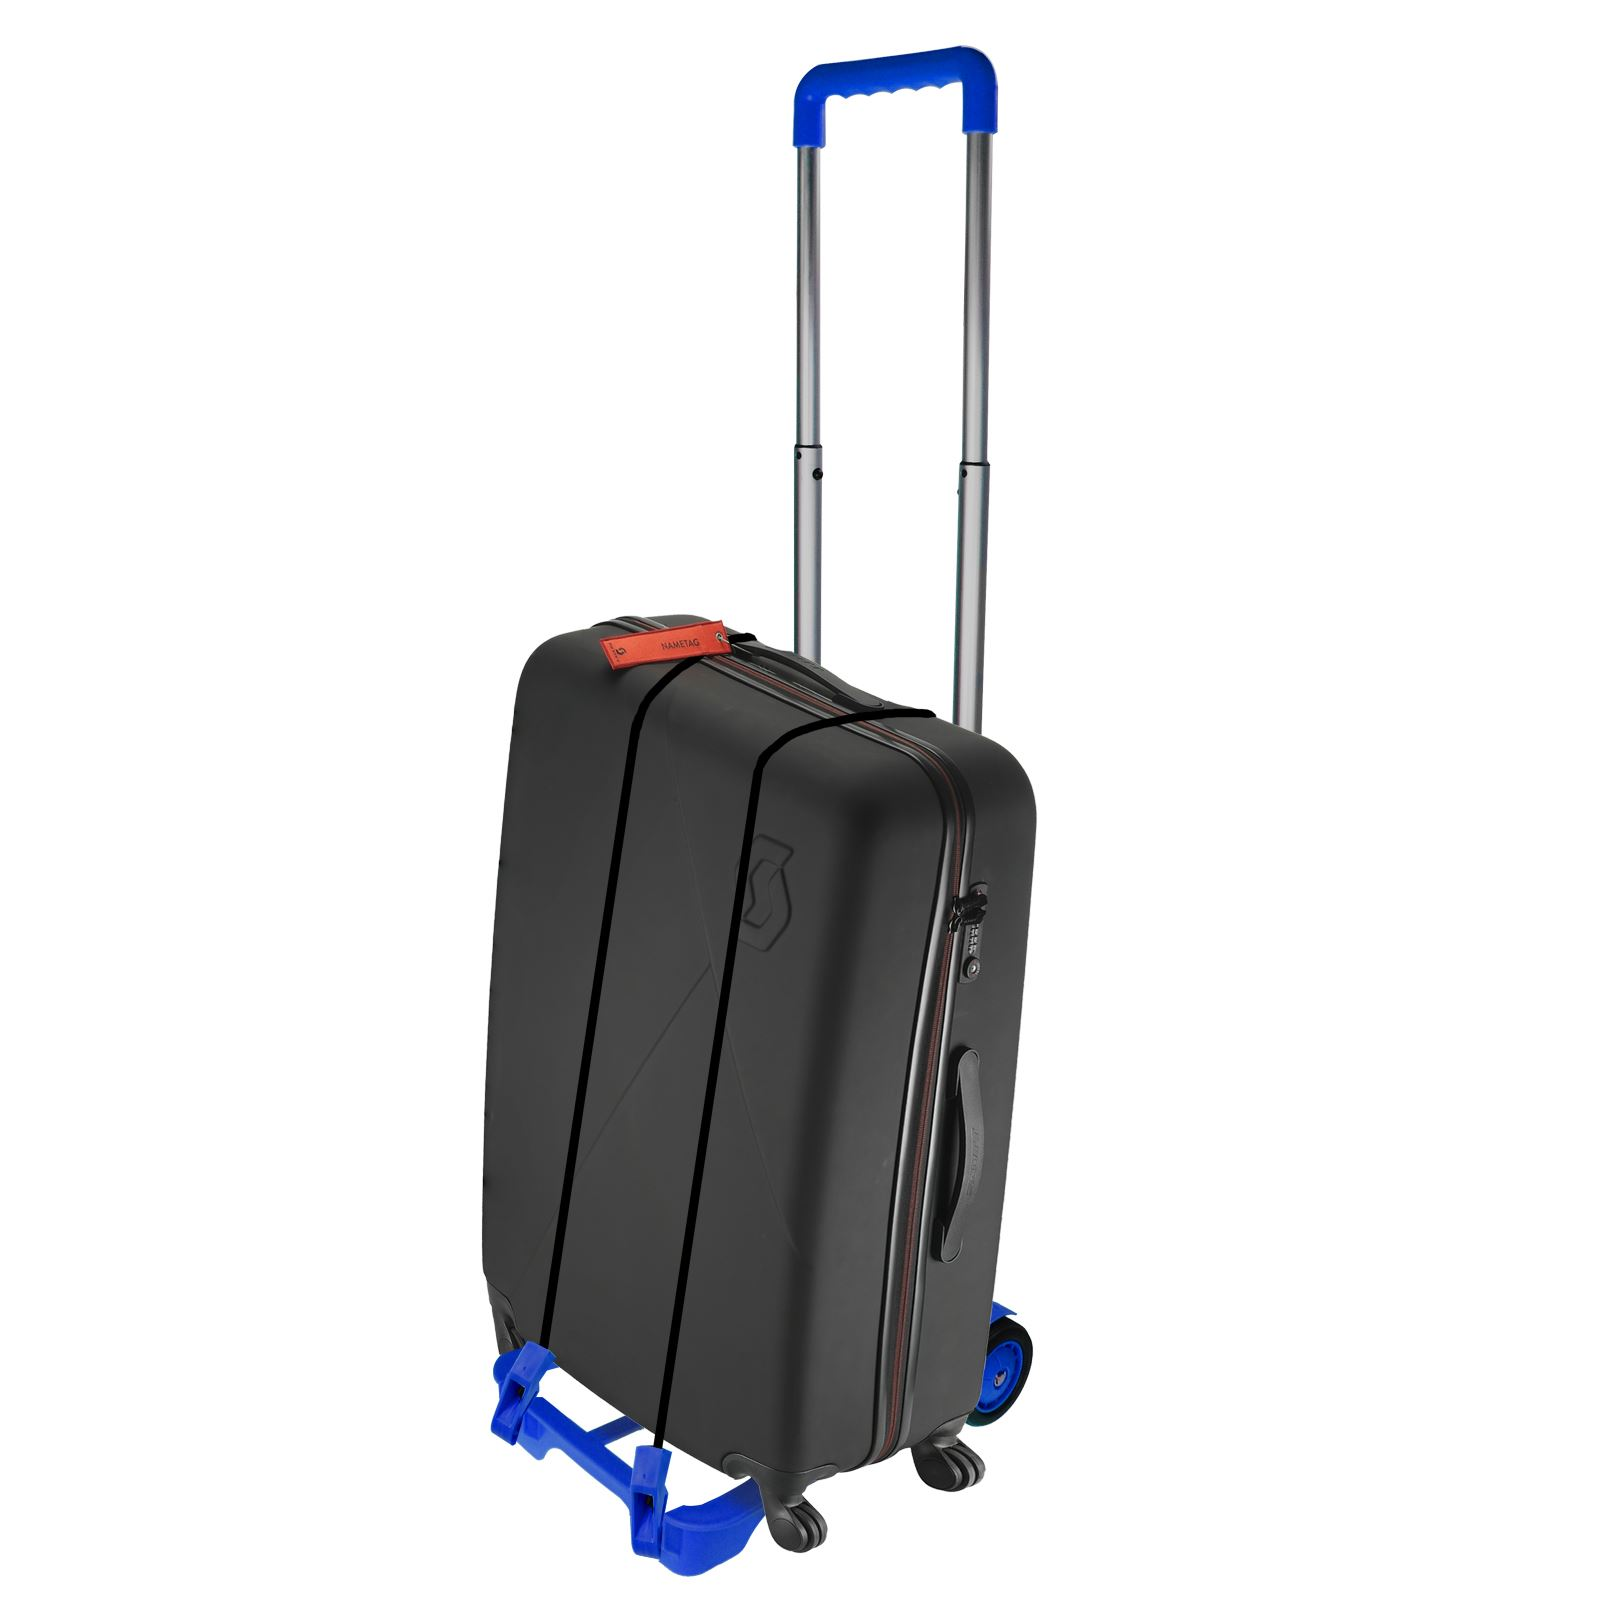 0b0980059 New Collapsible Luggage Trolley Folding Cabin Suitcase Bag Shopping ...